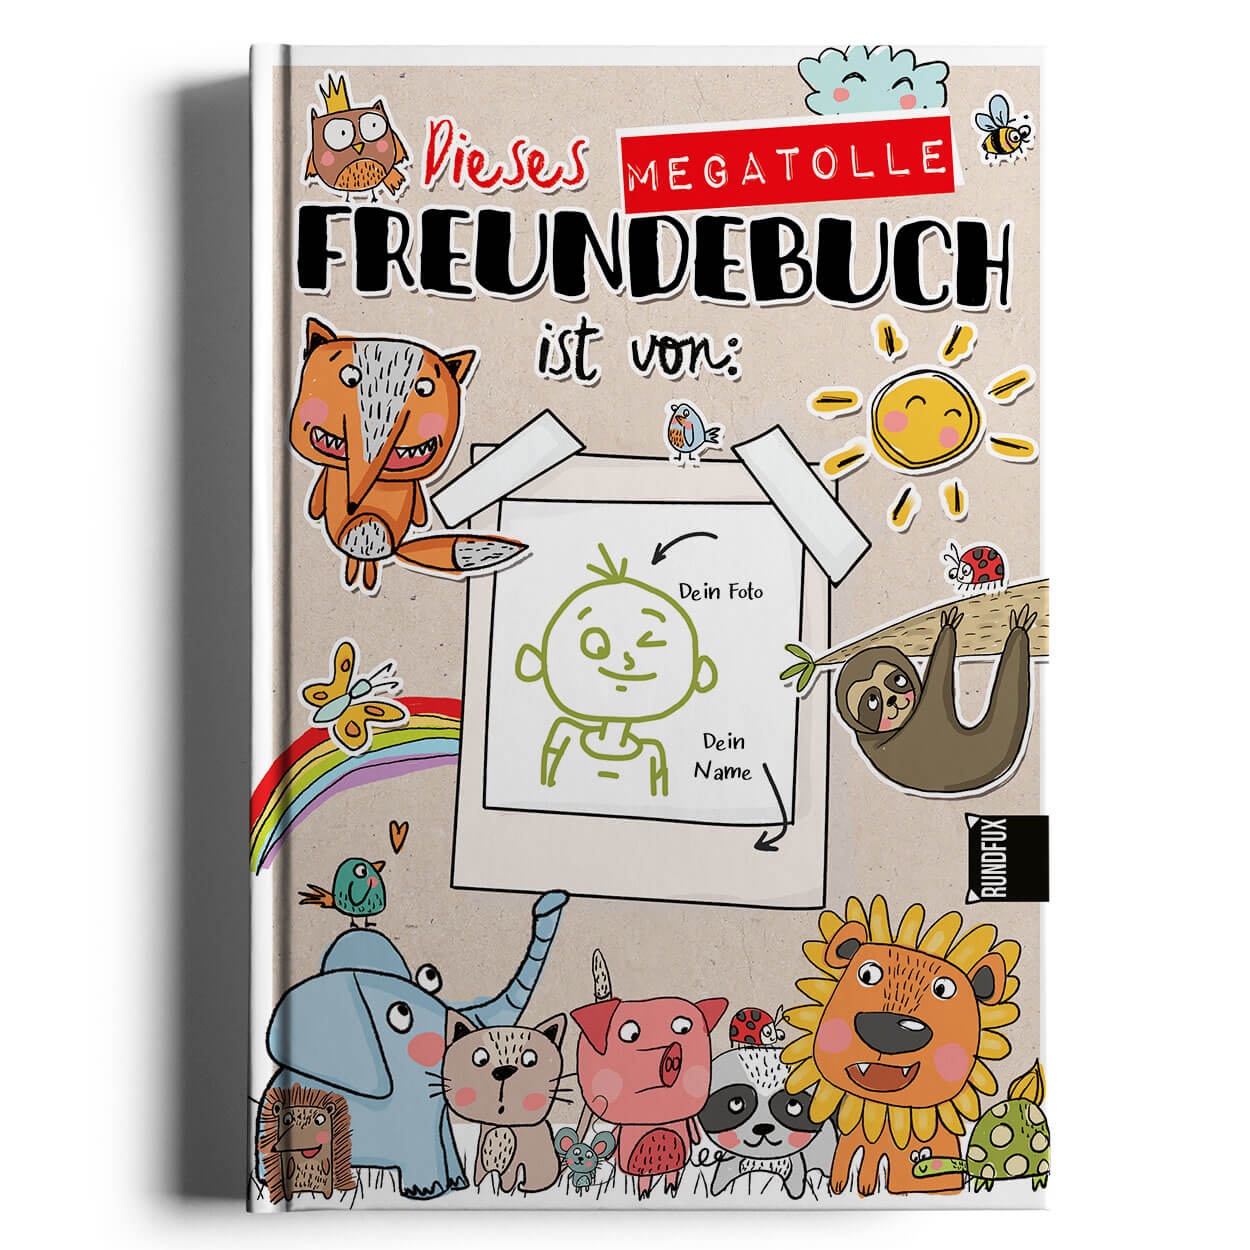 Freundebuch_Personalisierbar_RNDFX_CoverFRont copy